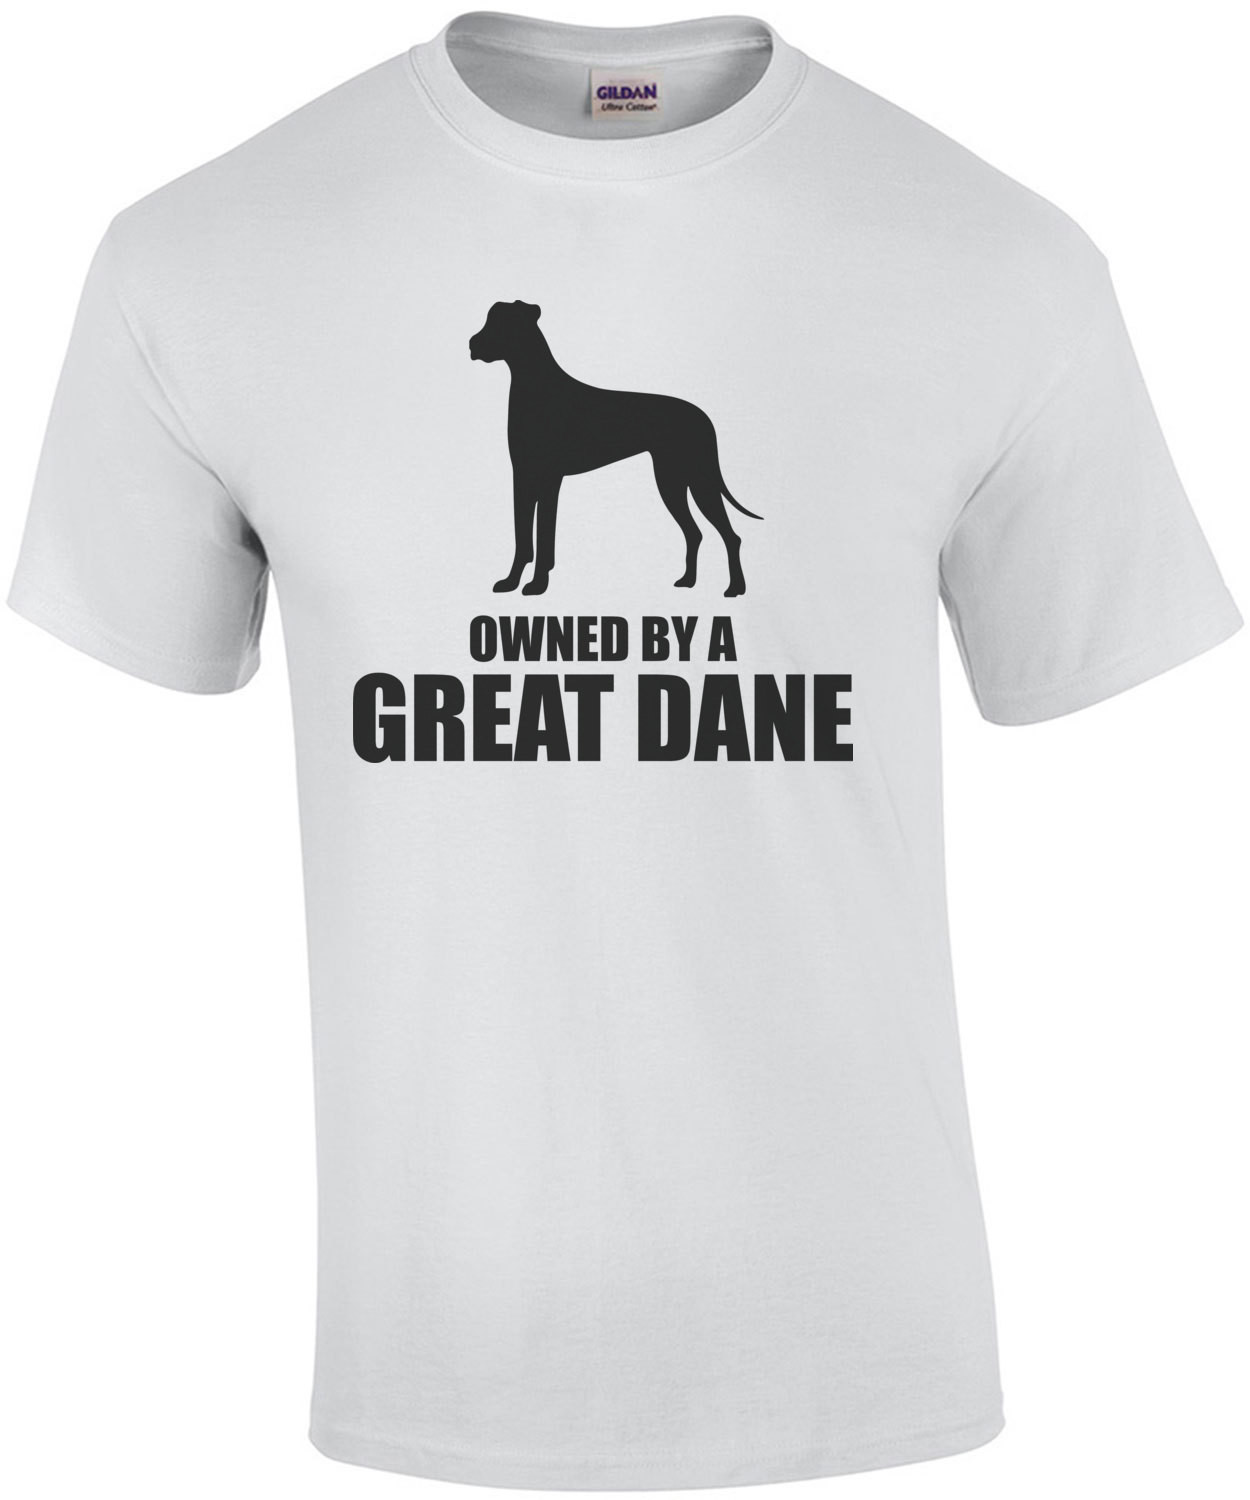 Owned by a great dane - great dane t-shirt